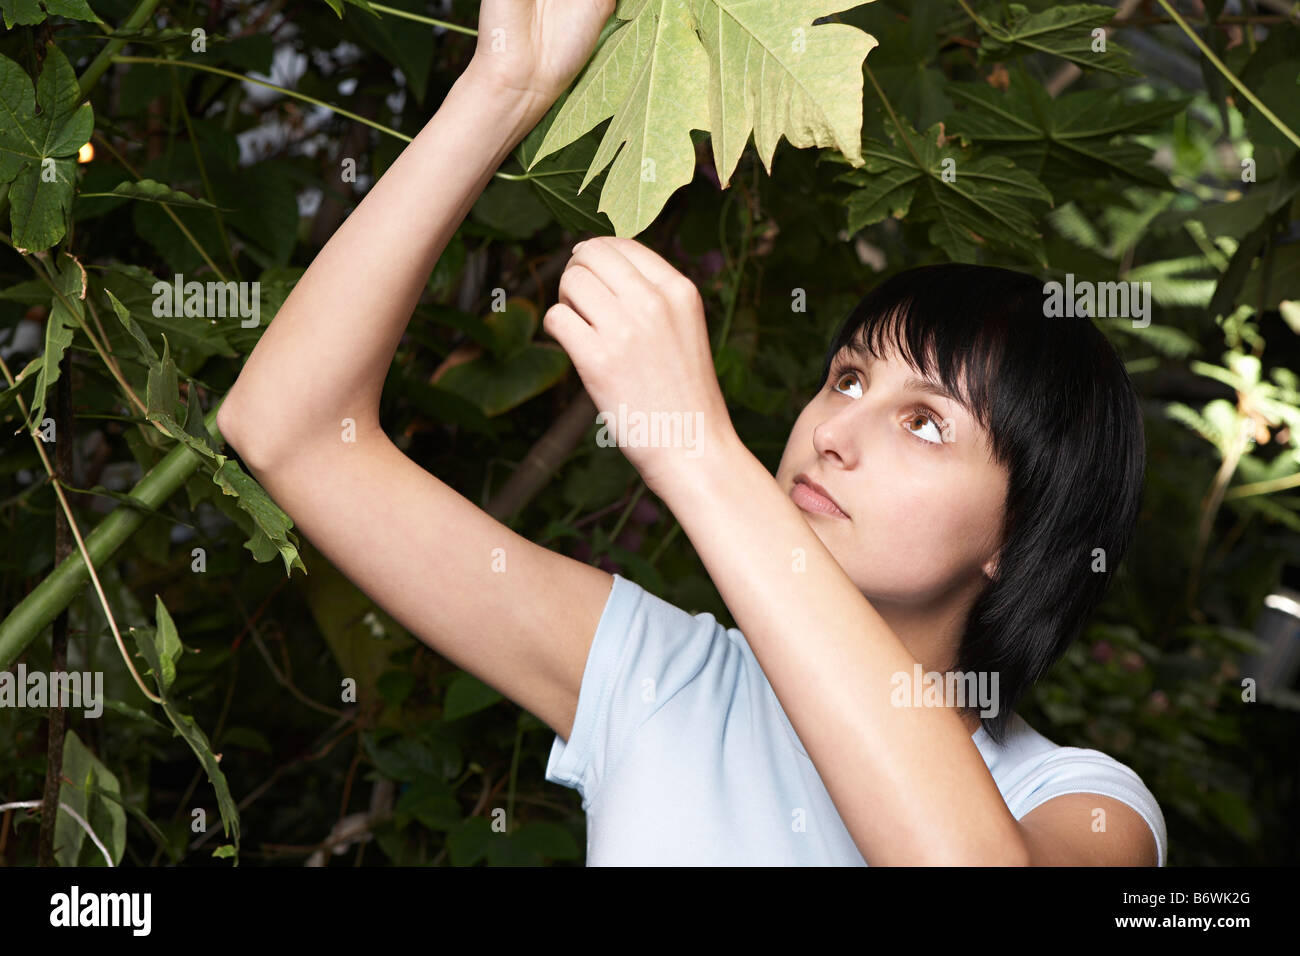 Woman Examining Leaf - Stock Image